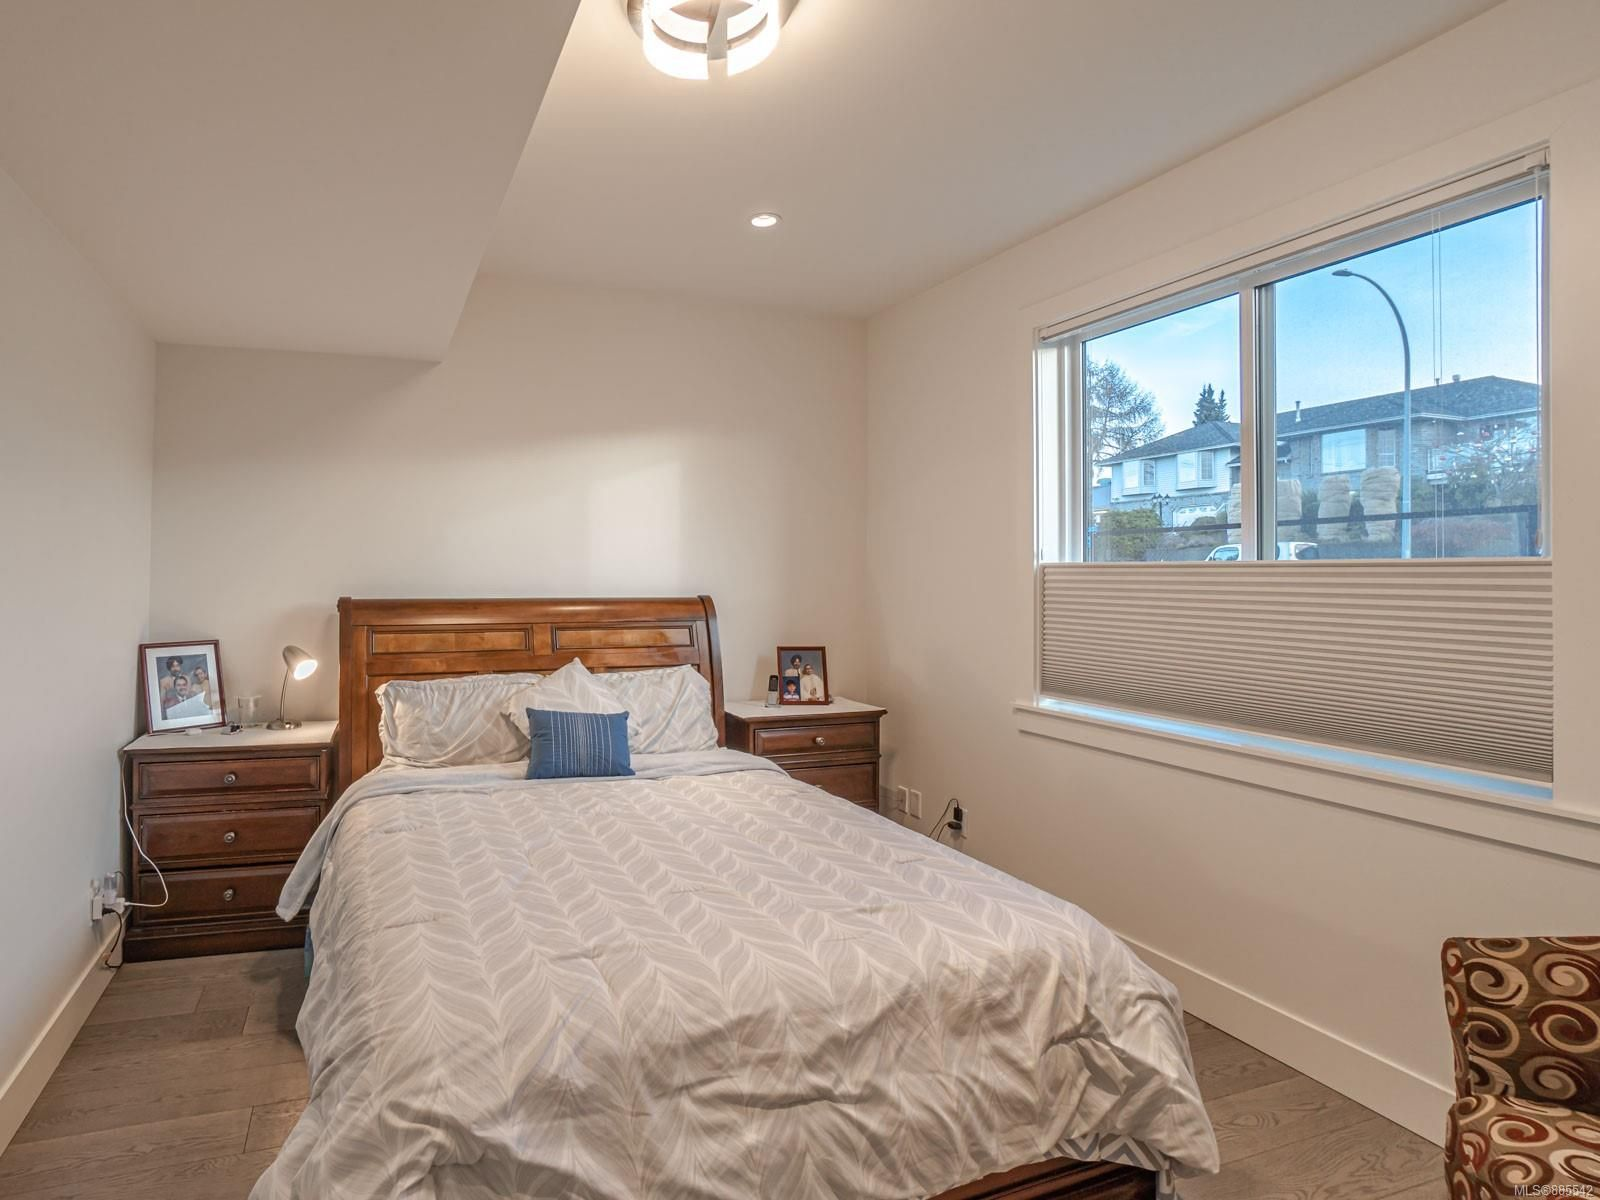 Photo 37: Photos: 6278 Invermere Rd in : Na North Nanaimo House for sale (Nanaimo)  : MLS®# 885542